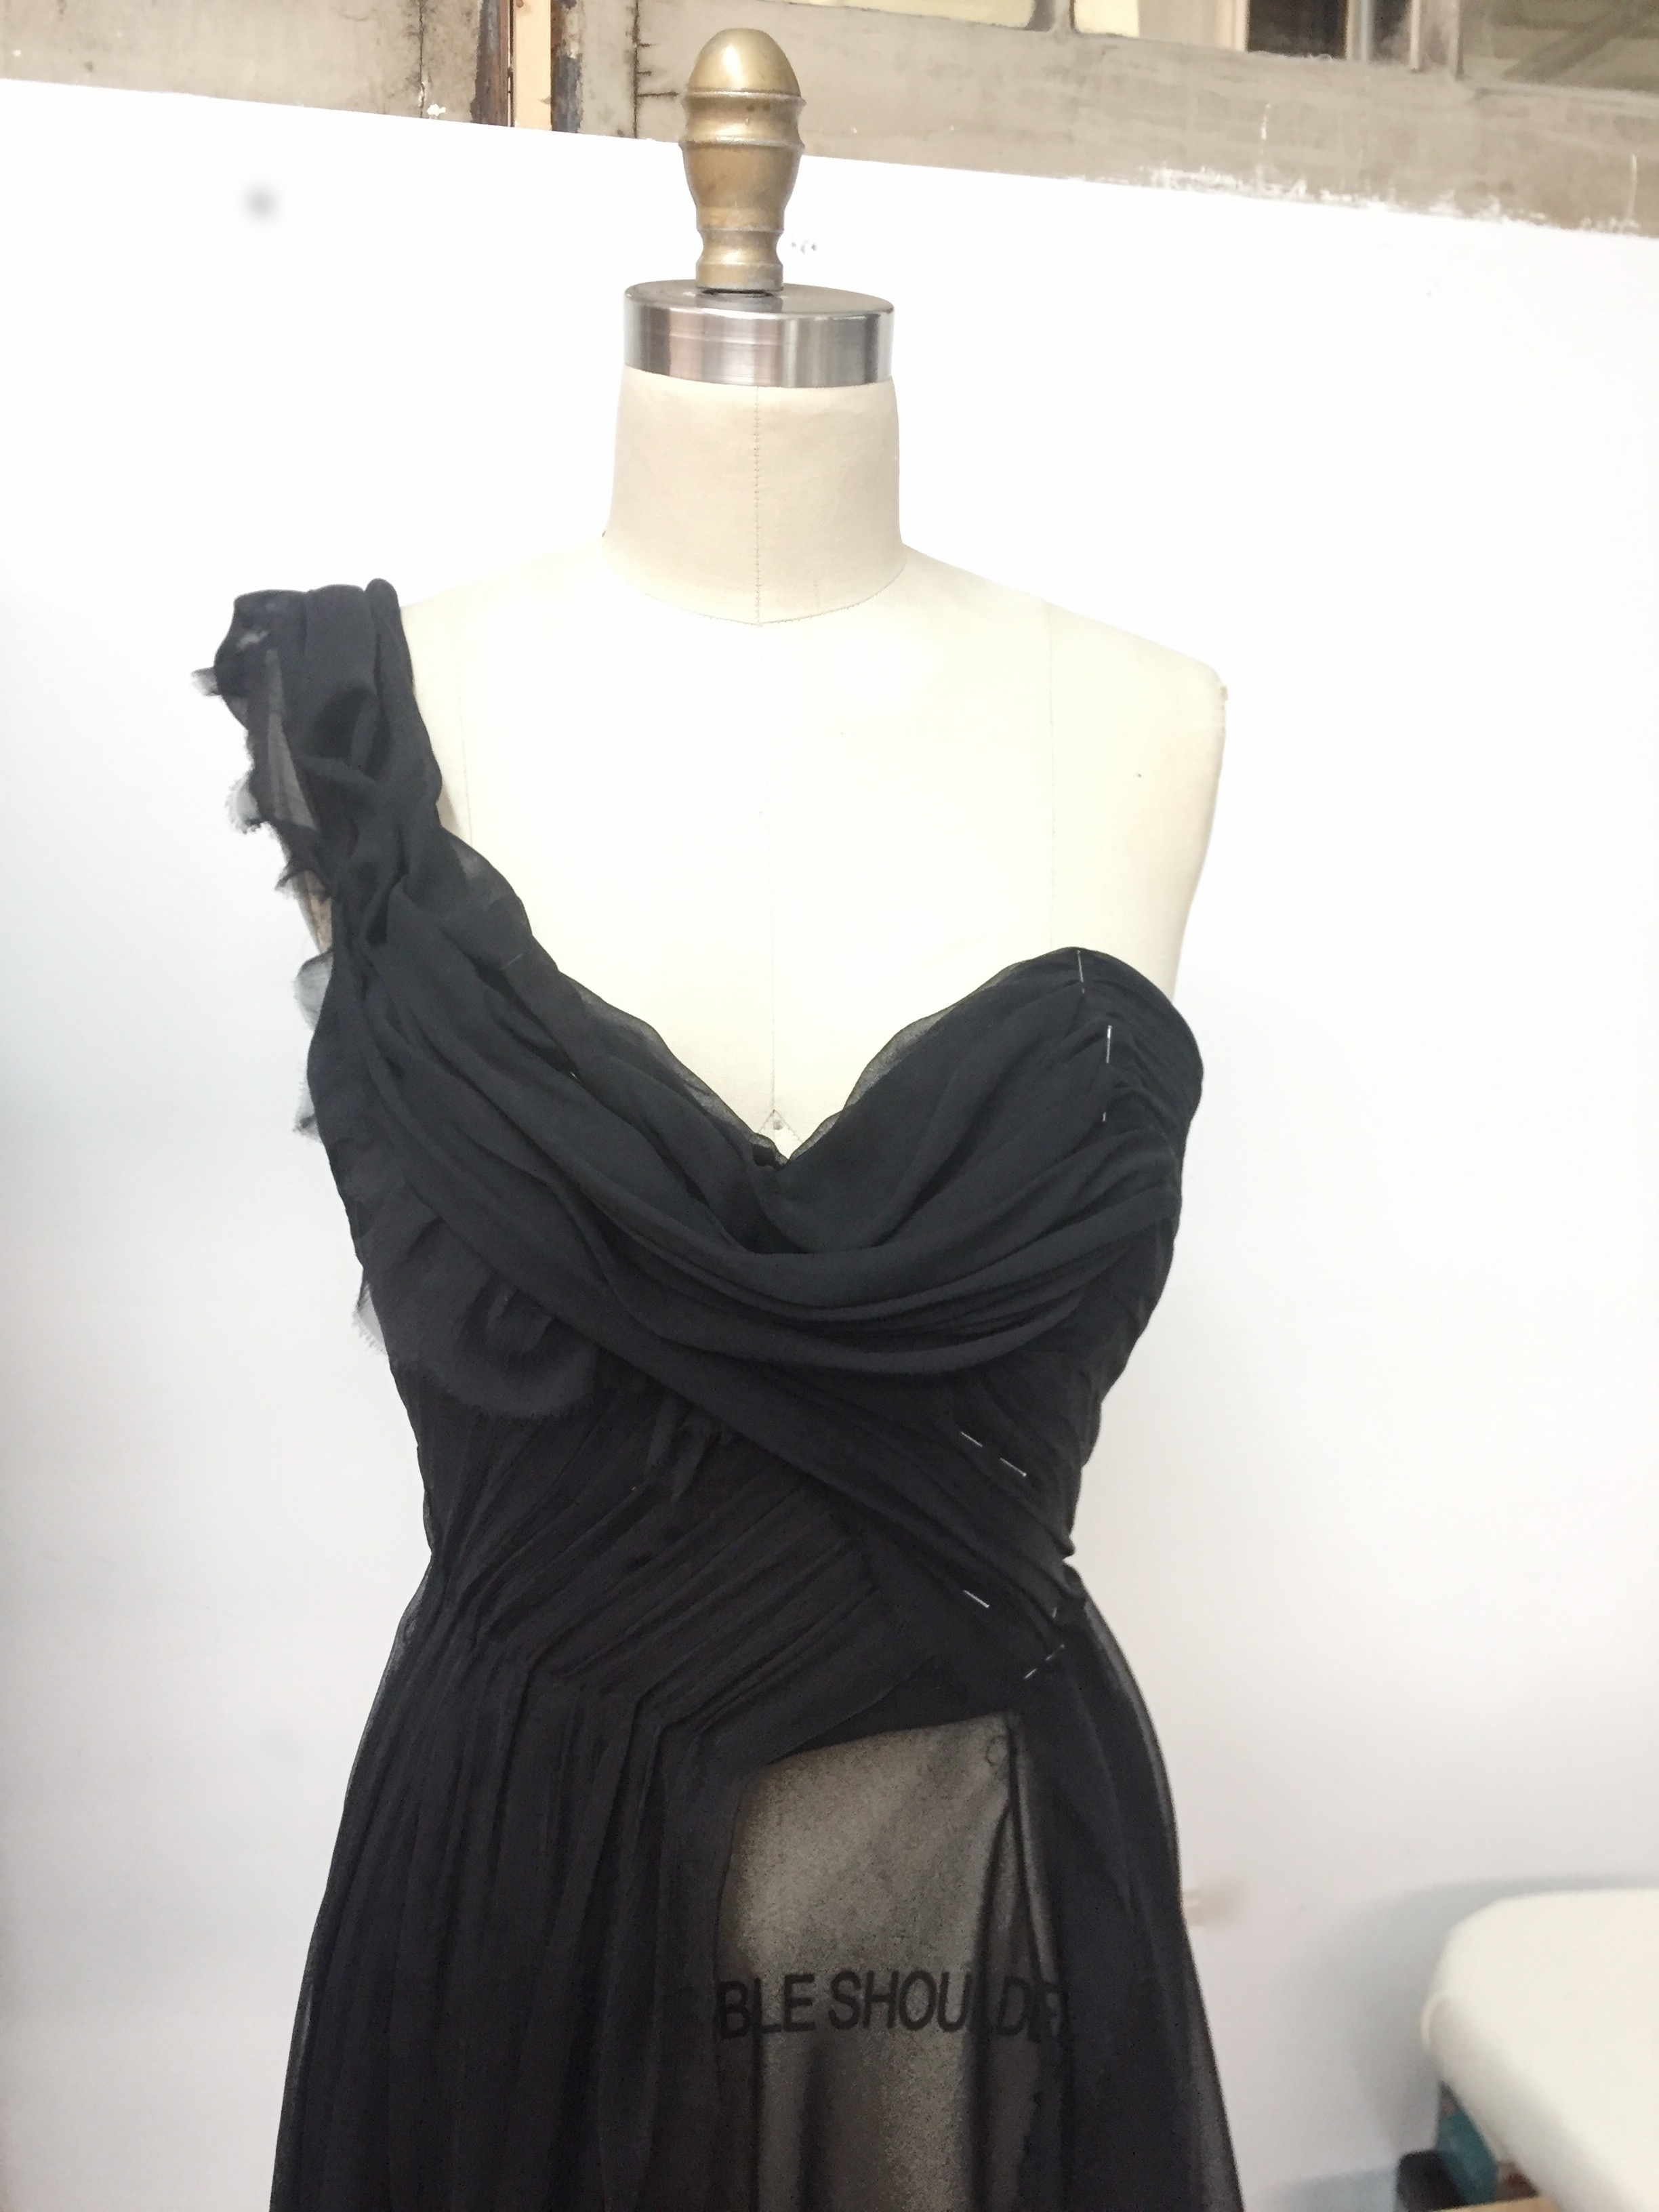 Draping in progress.